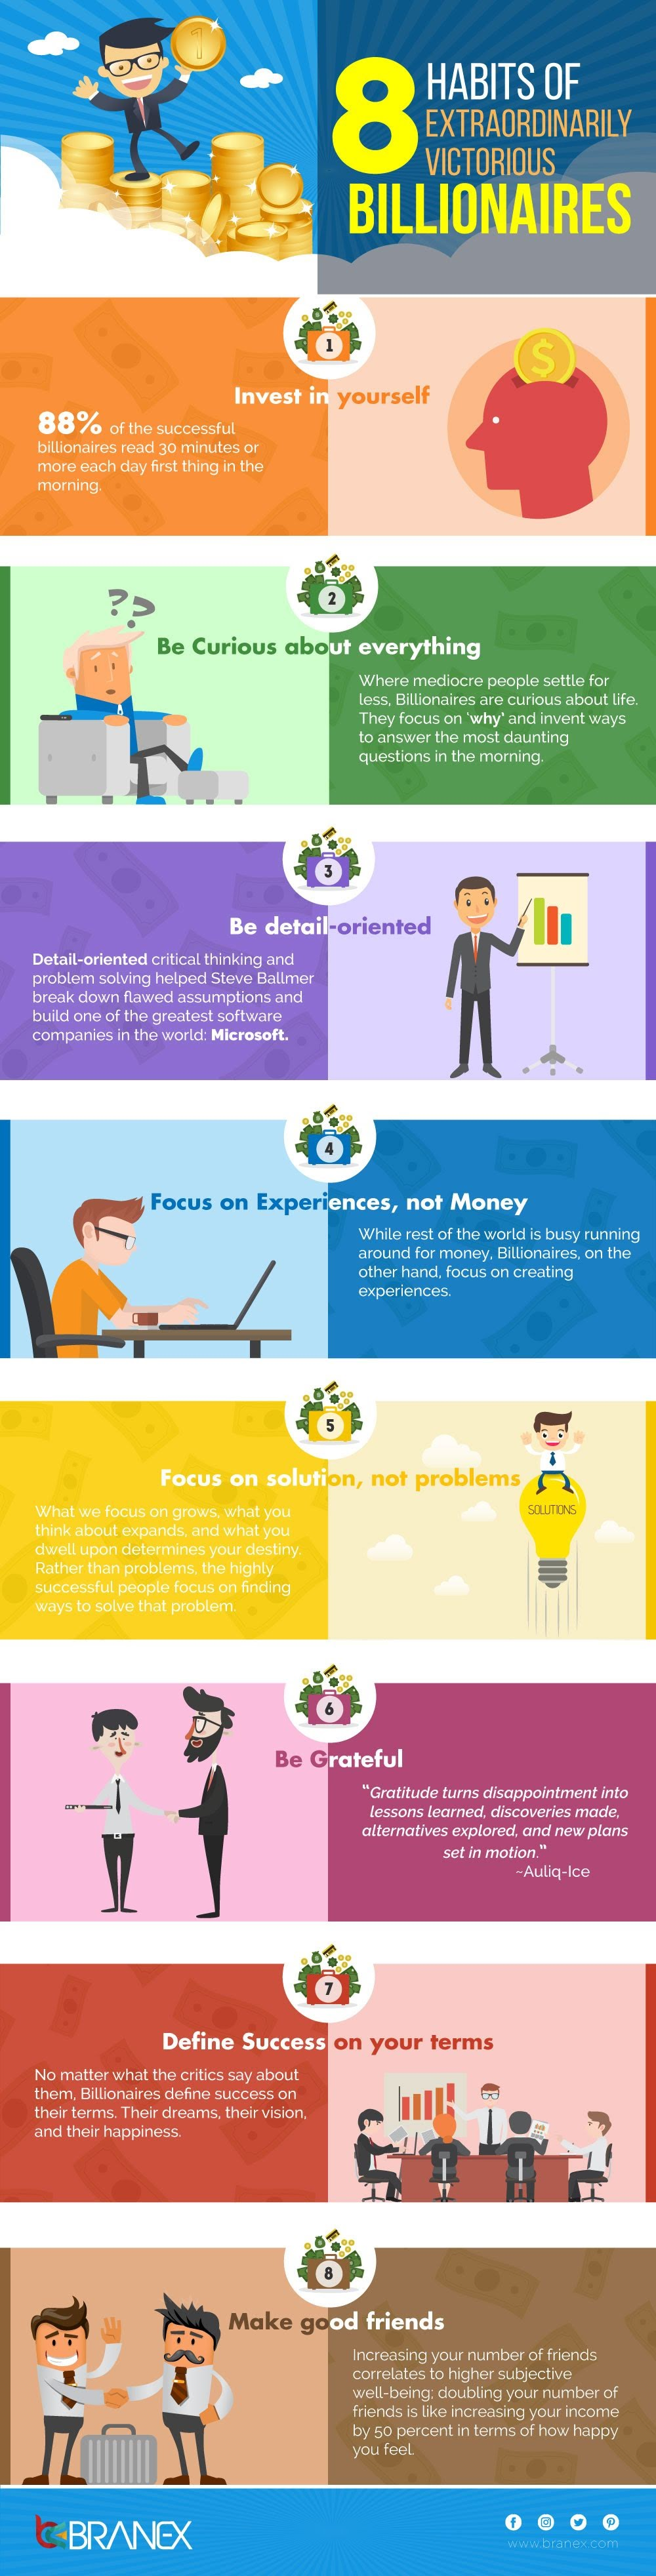 8 Habits of Extraordinarily Victorious Billionaires #Infographic